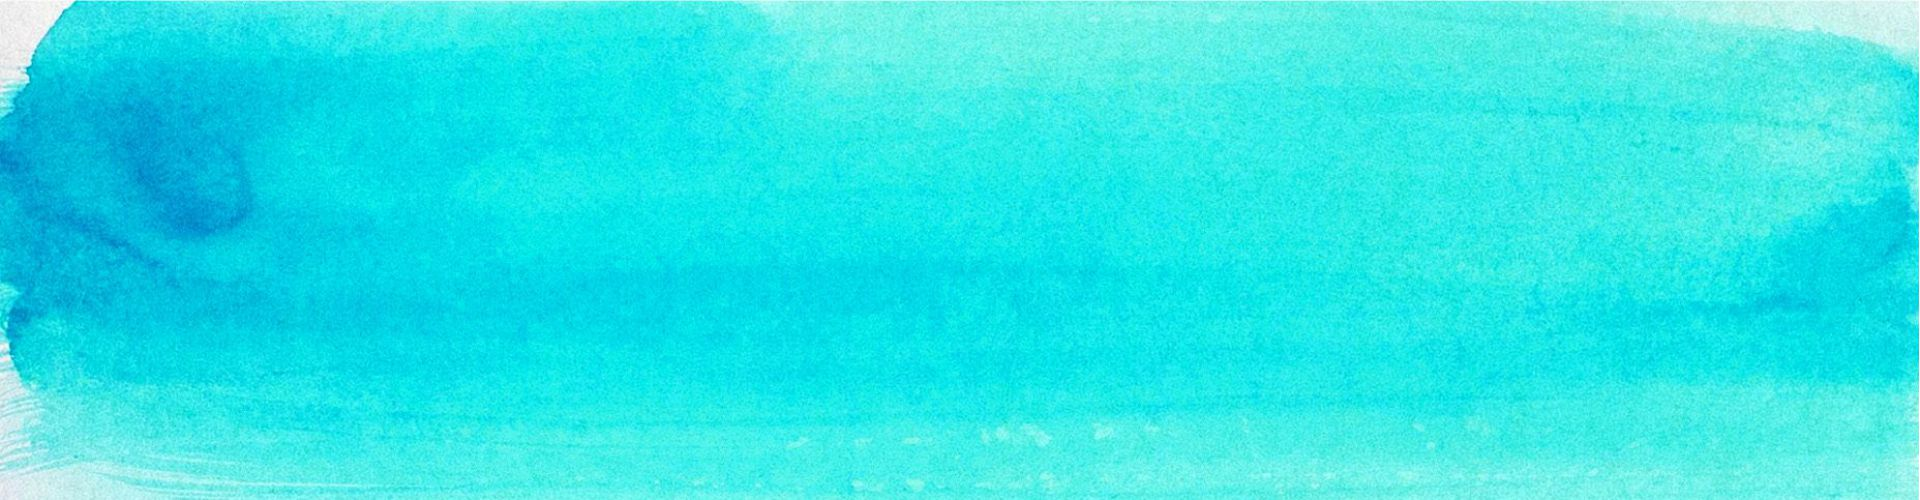 teal-turquoise-watercolor-background